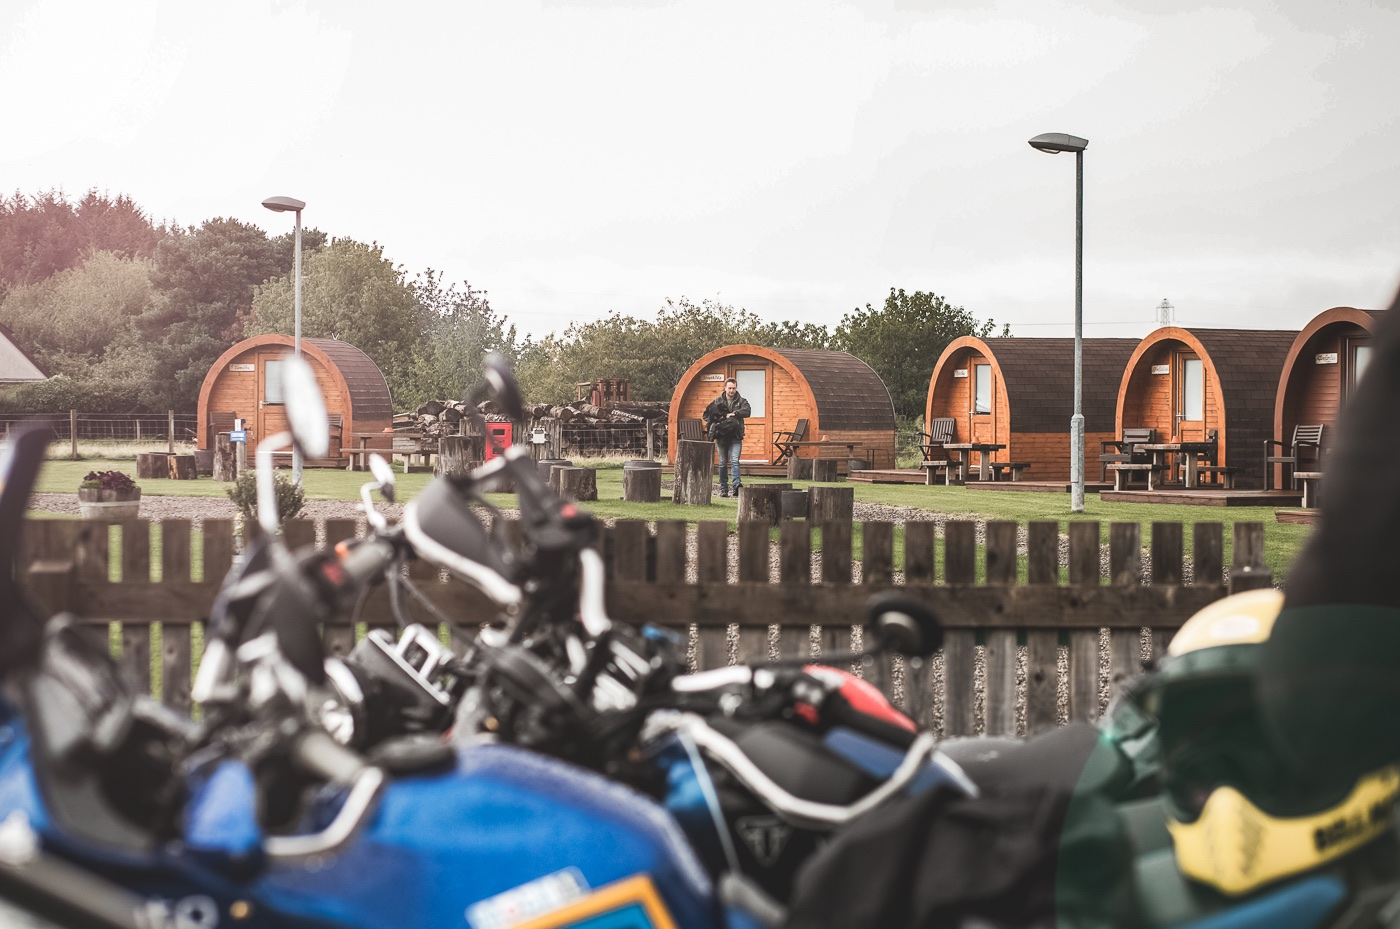 BikerBnB Host Accommodation